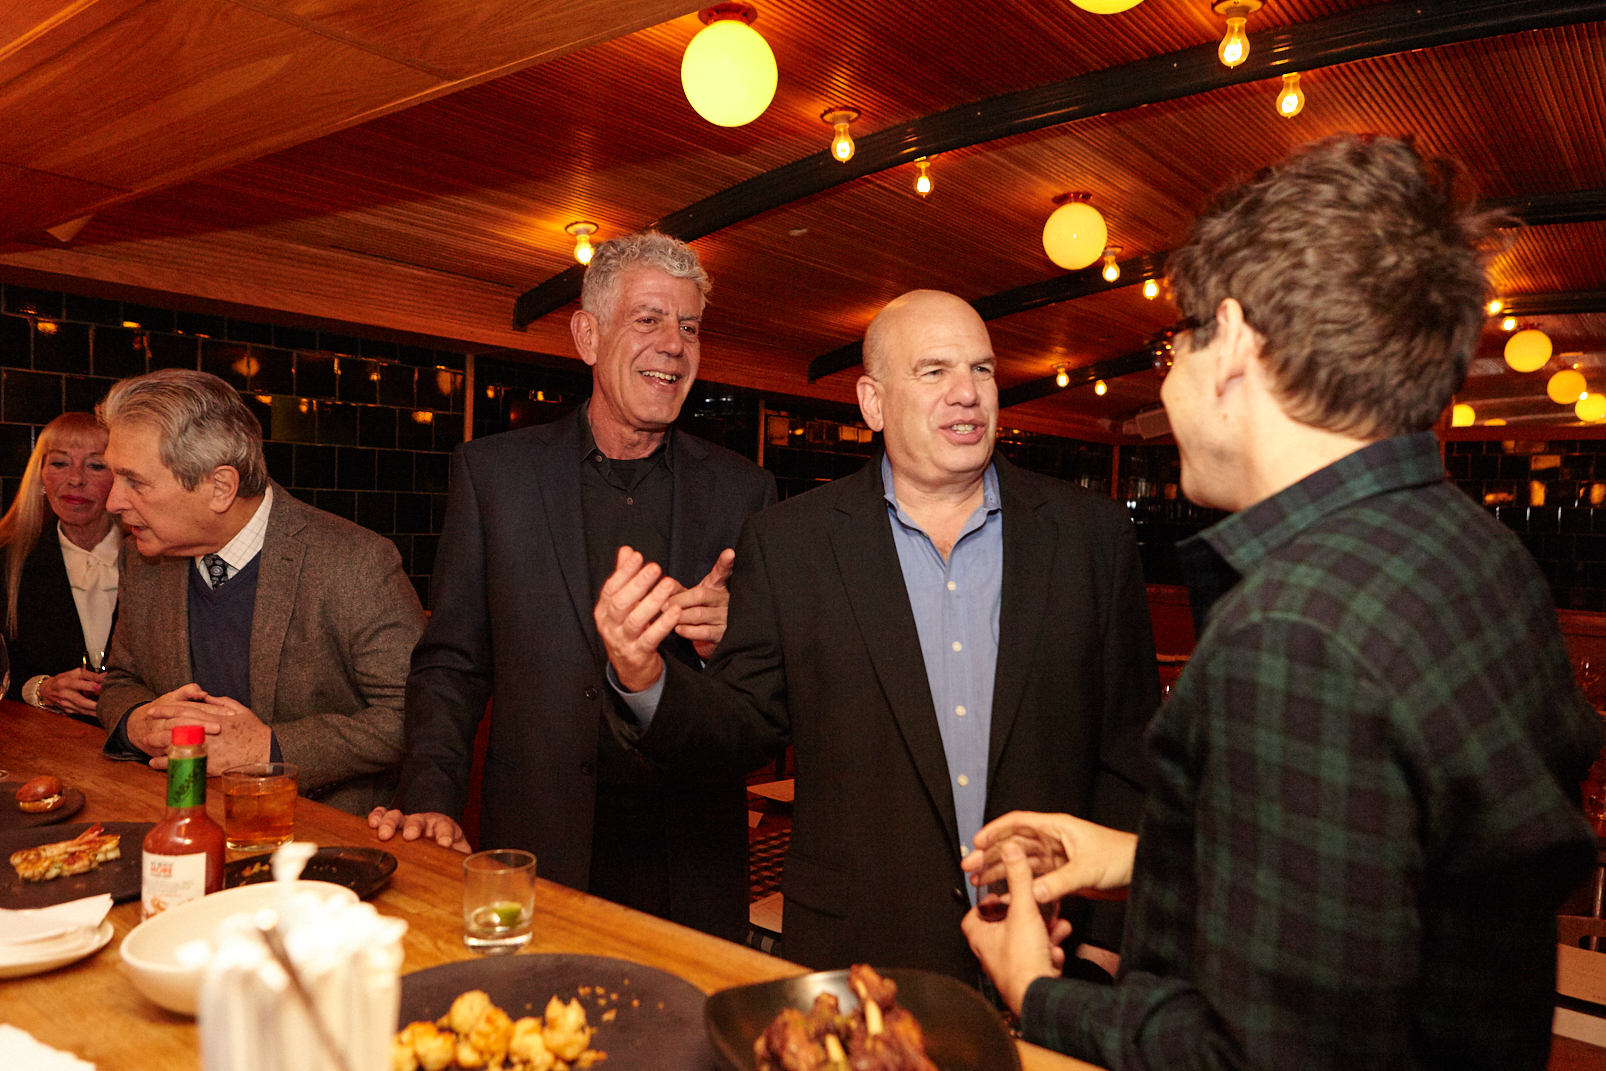 With Anthony Bourdain and David Simon